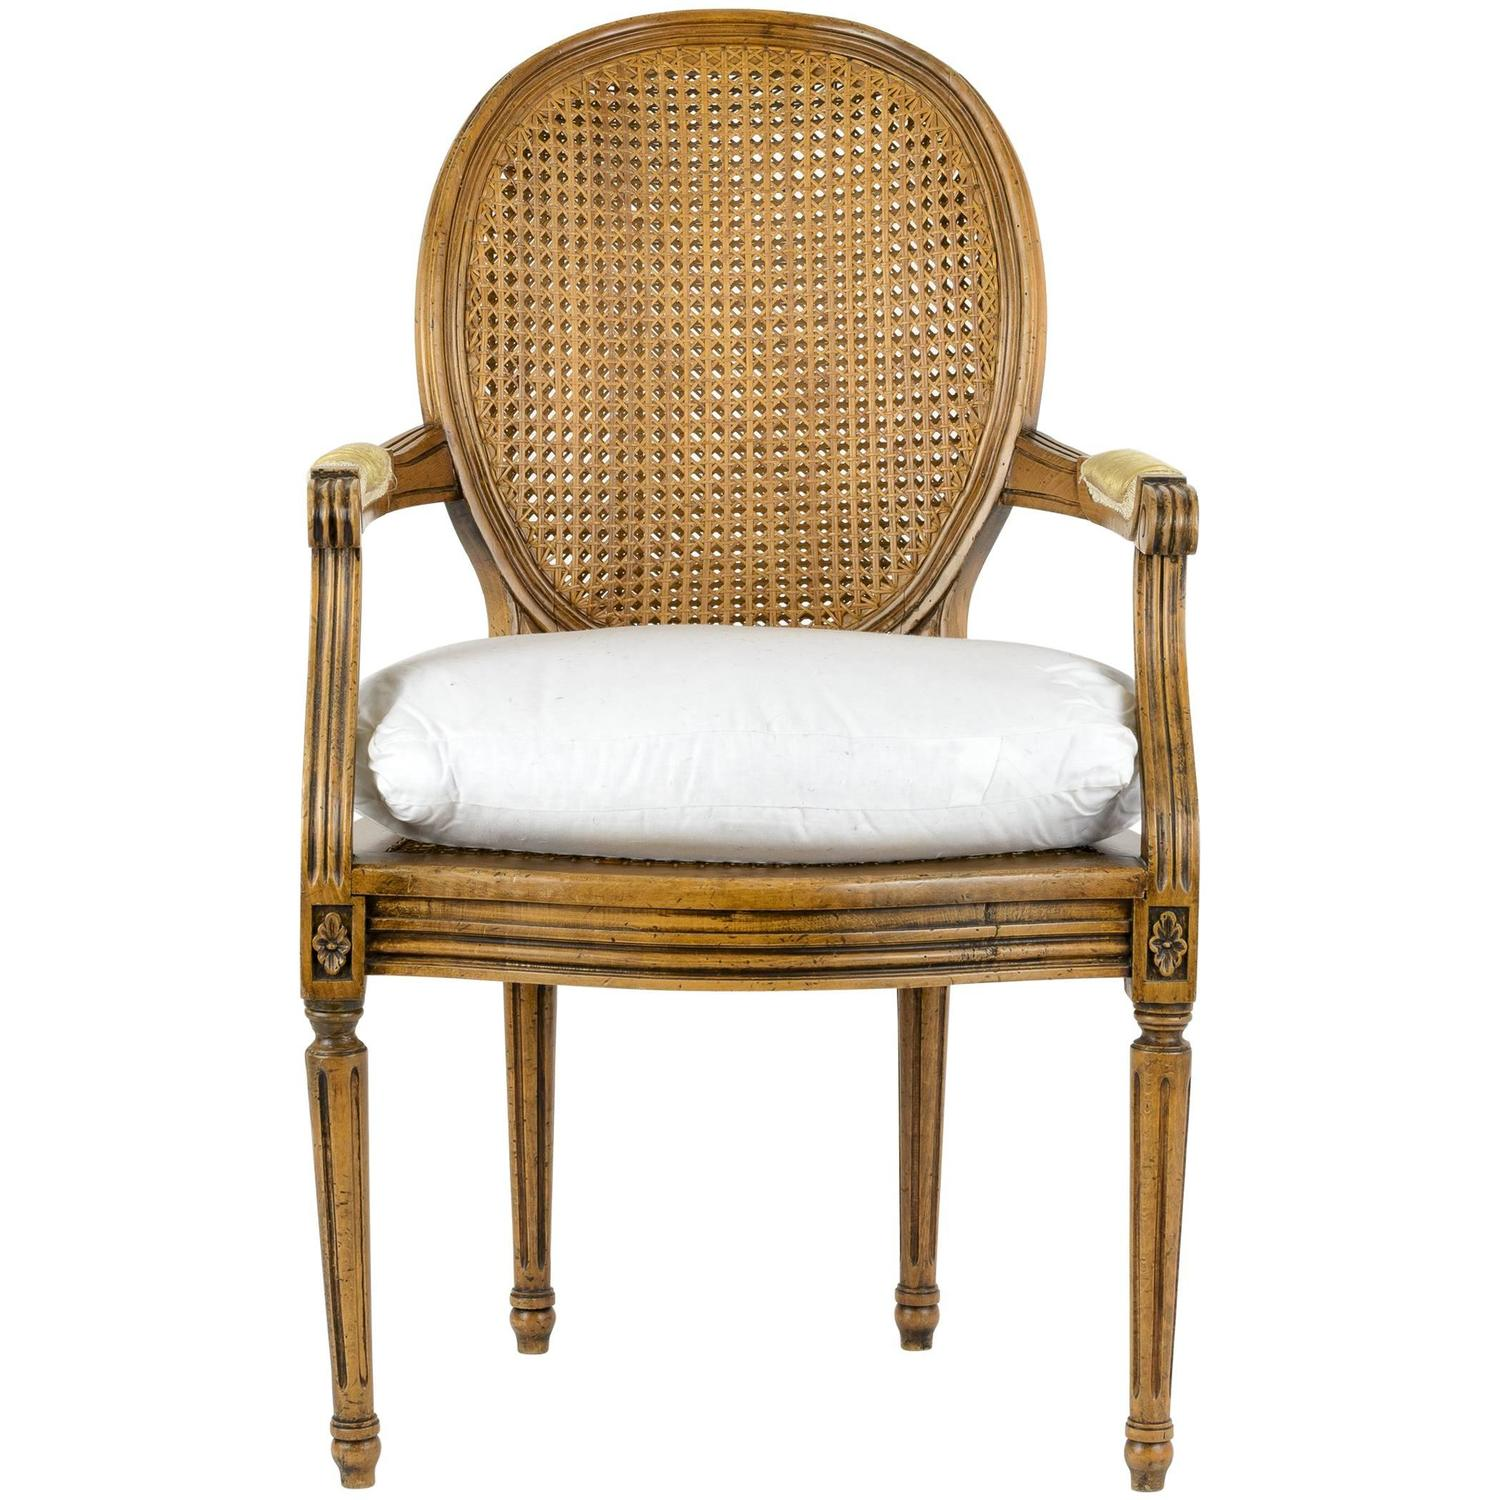 Louis XVI Armchair with Cane Back and Seat For Sale at 1stdibs